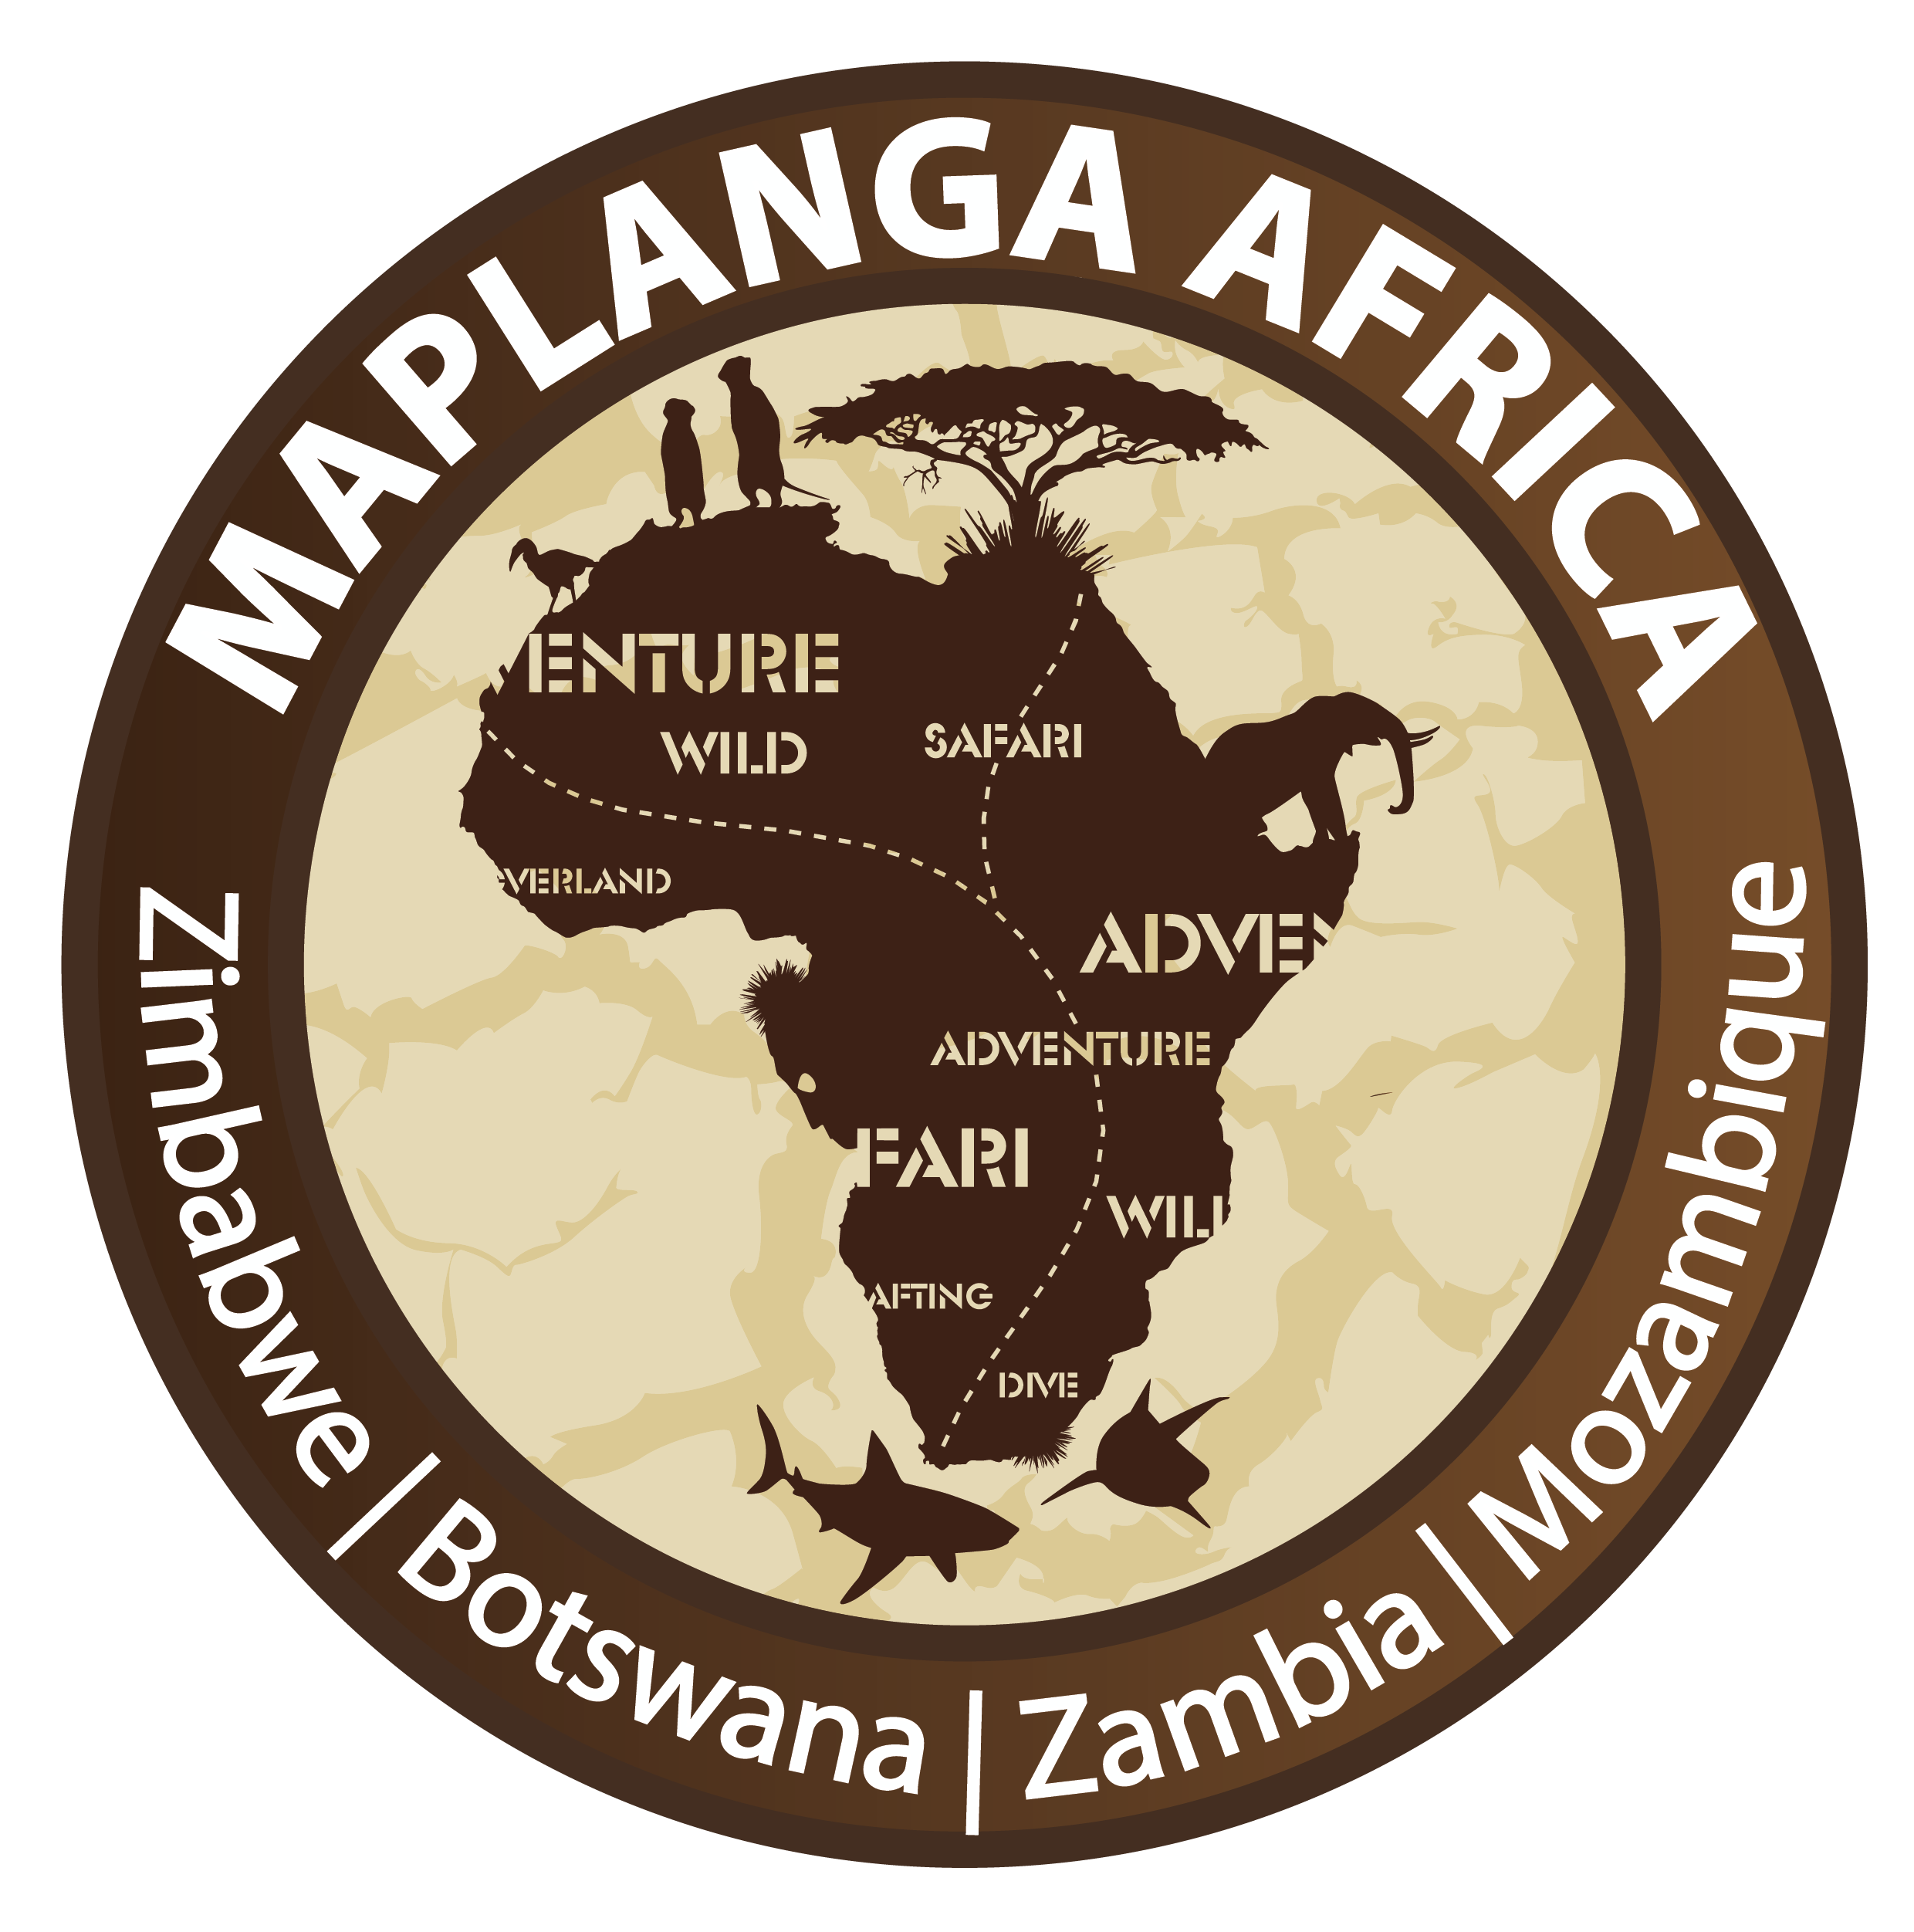 Maplanga Africa 2013 (2)-01.png (583 KB)